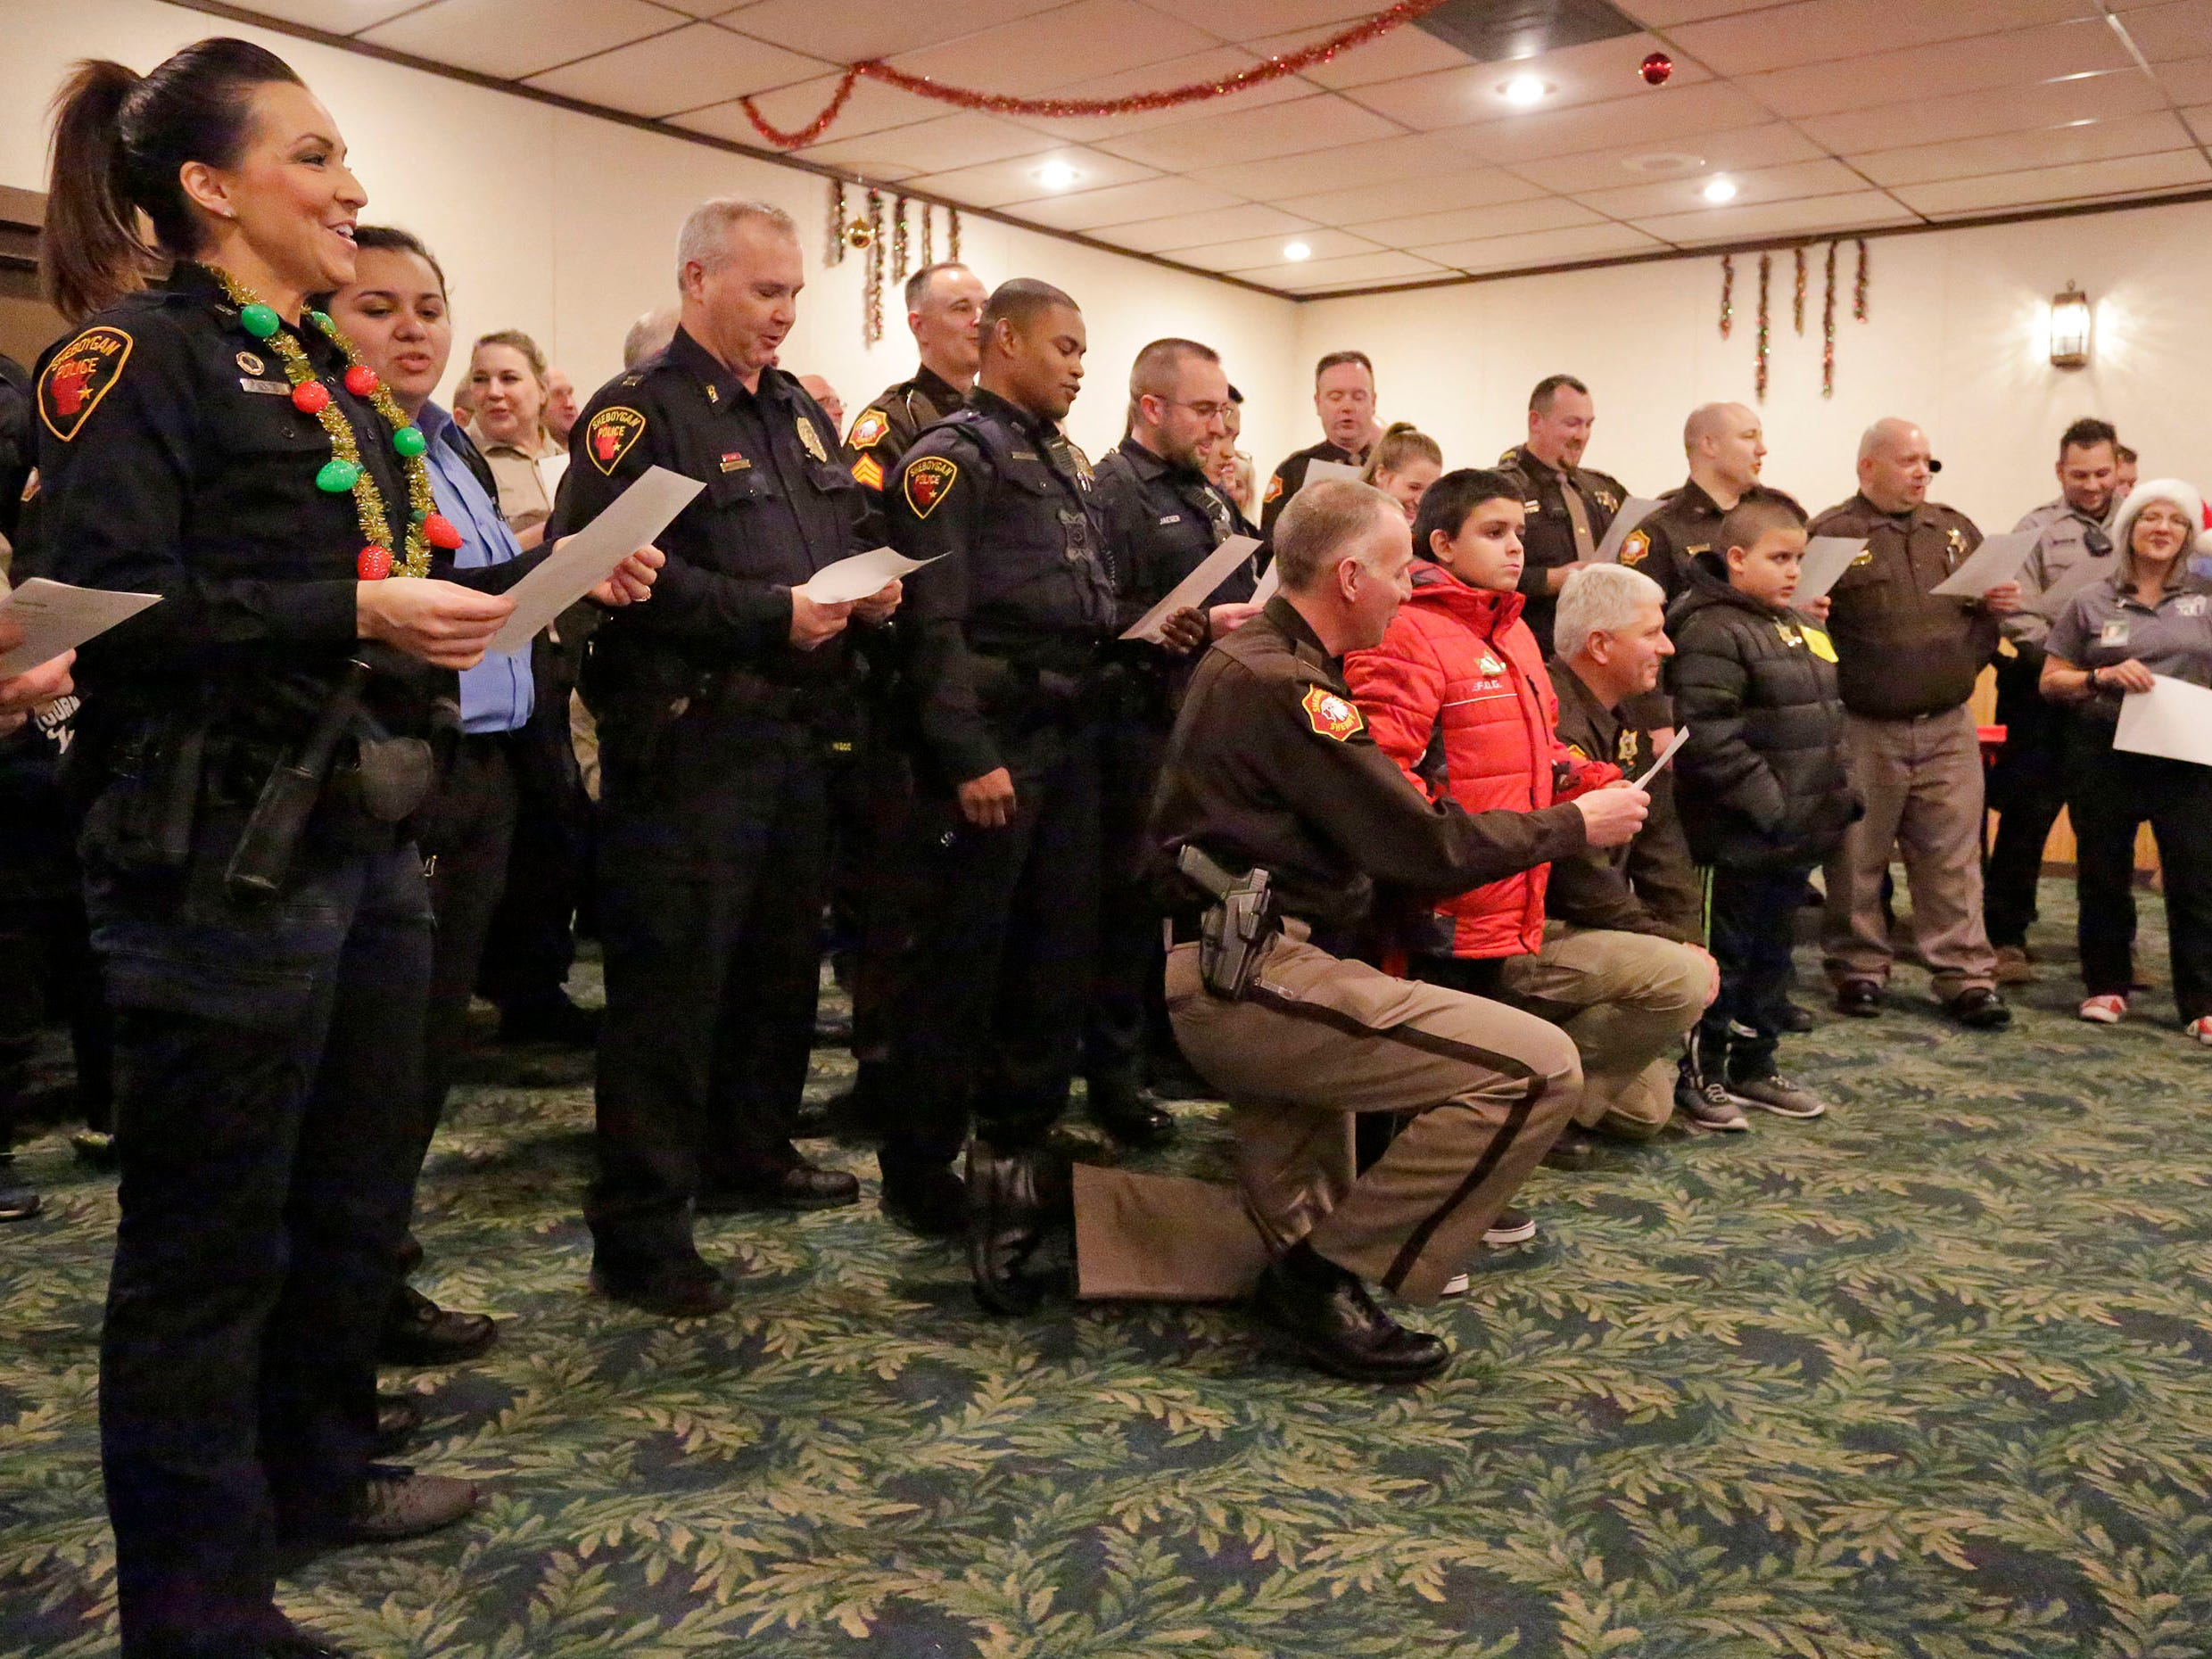 Sheboygan County area law enforcement people sing Christmas carols at Lakeshore Lanes at the start of Shop with a Cop, Tuesday, December 4, 2018, in Sheboygan, Wis.  The program, in its 21st year, raises funds to give children a chance to buy holiday gifts that they otherwise might not receive.